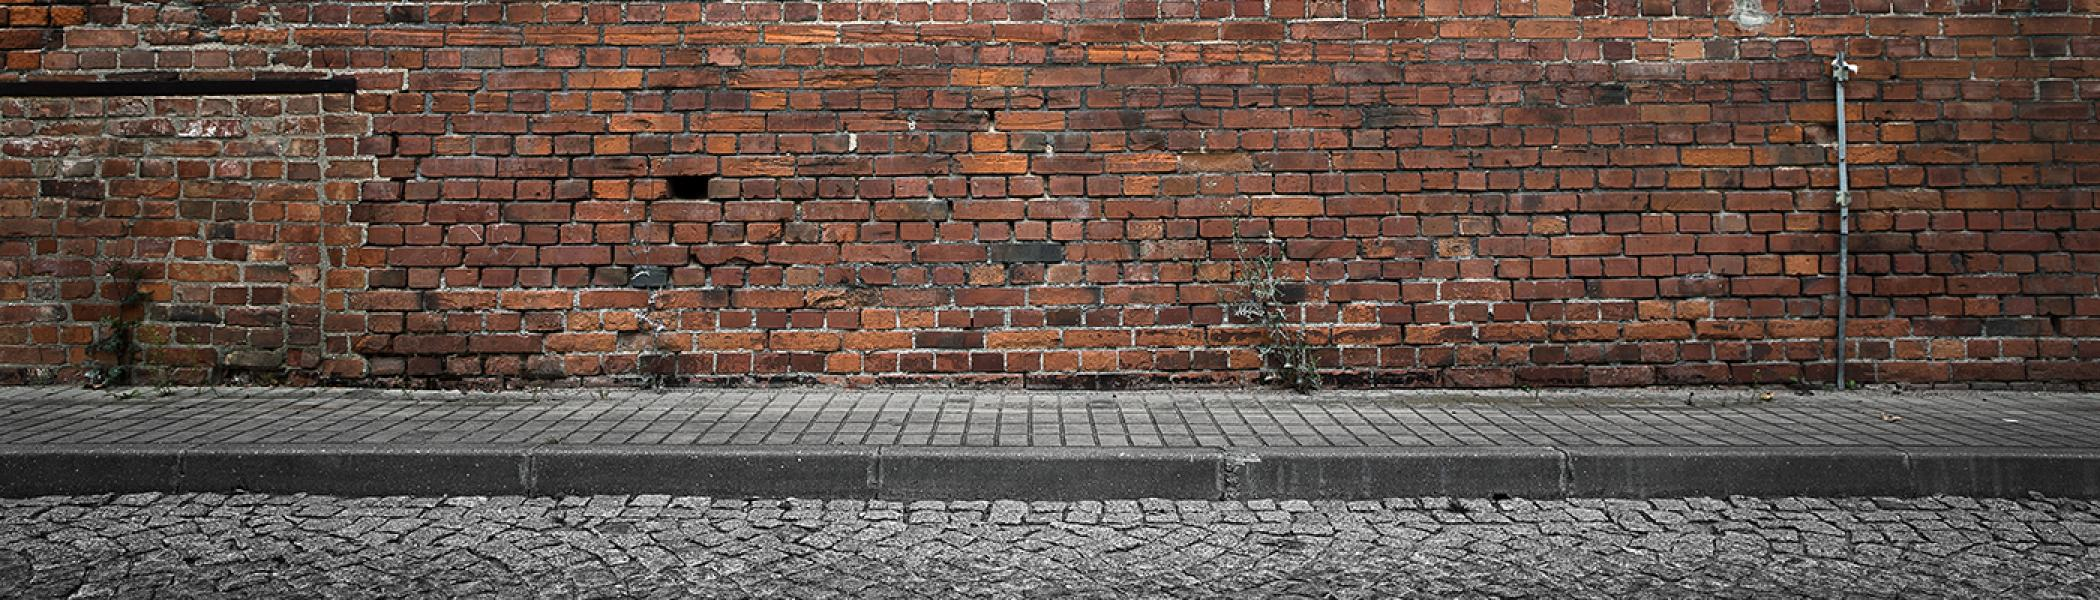 A brick wall with a grey sidewalk supporting it